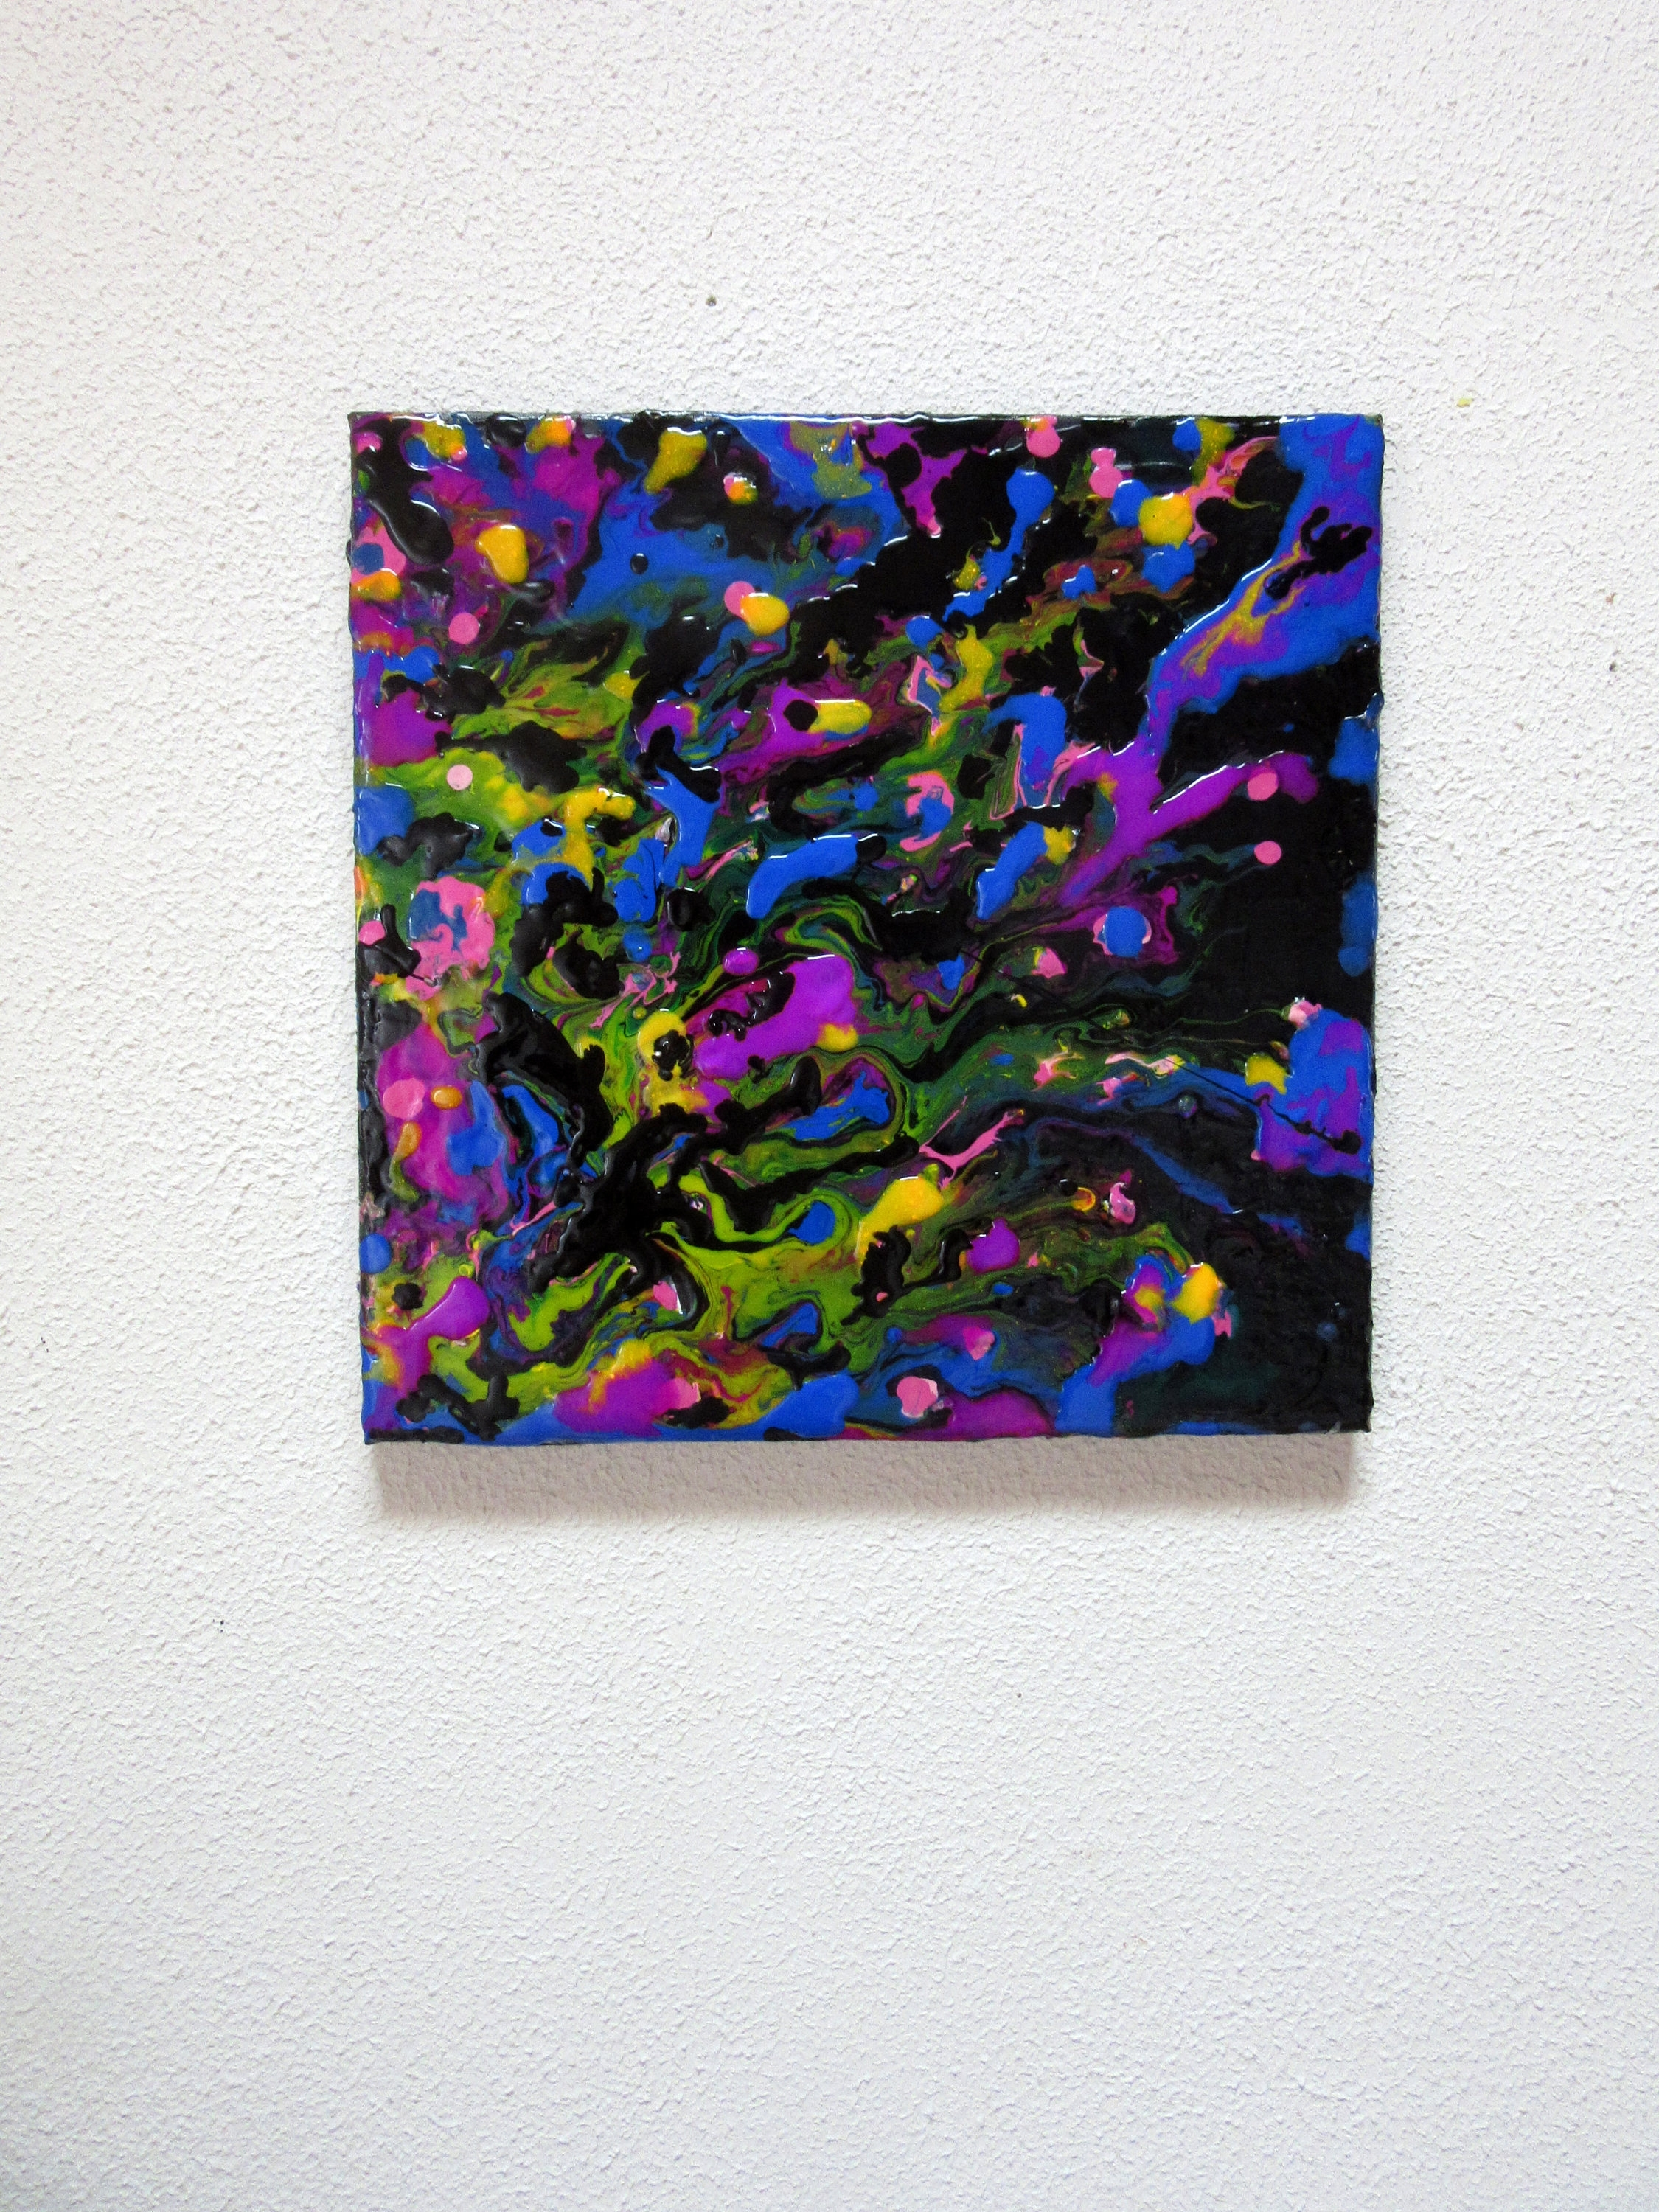 12 X 12 Art, Fluid Acrylic Painting, Liquid Painting, Colorful Pertaining To Best And Newest Abstract Neon Wall Art (View 1 of 20)